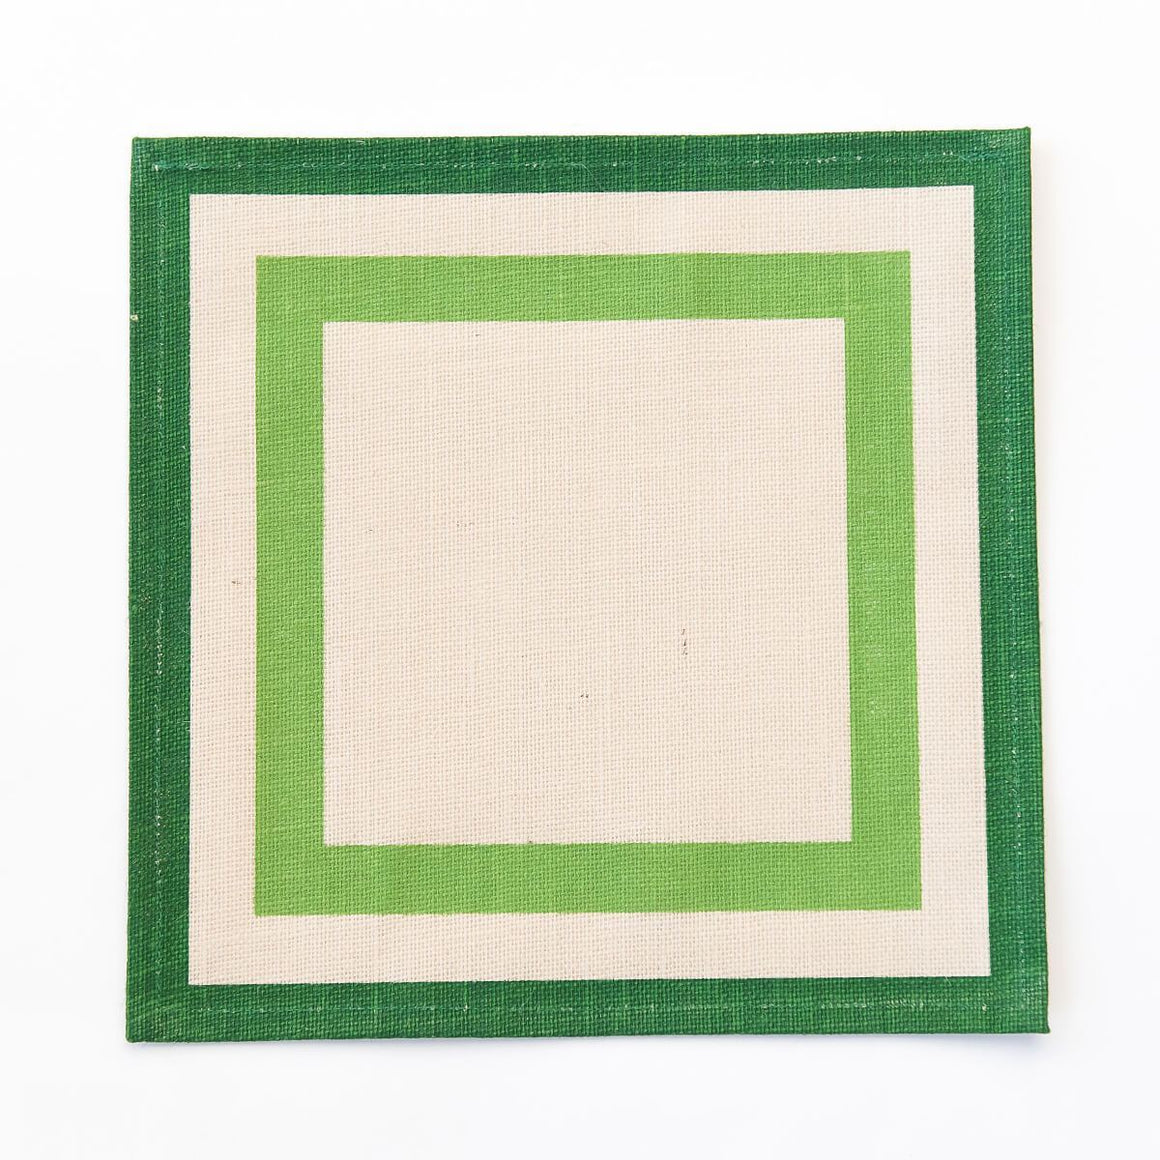 Green Stripe Jute Placemats Set of 4 - The Preppy Bunny